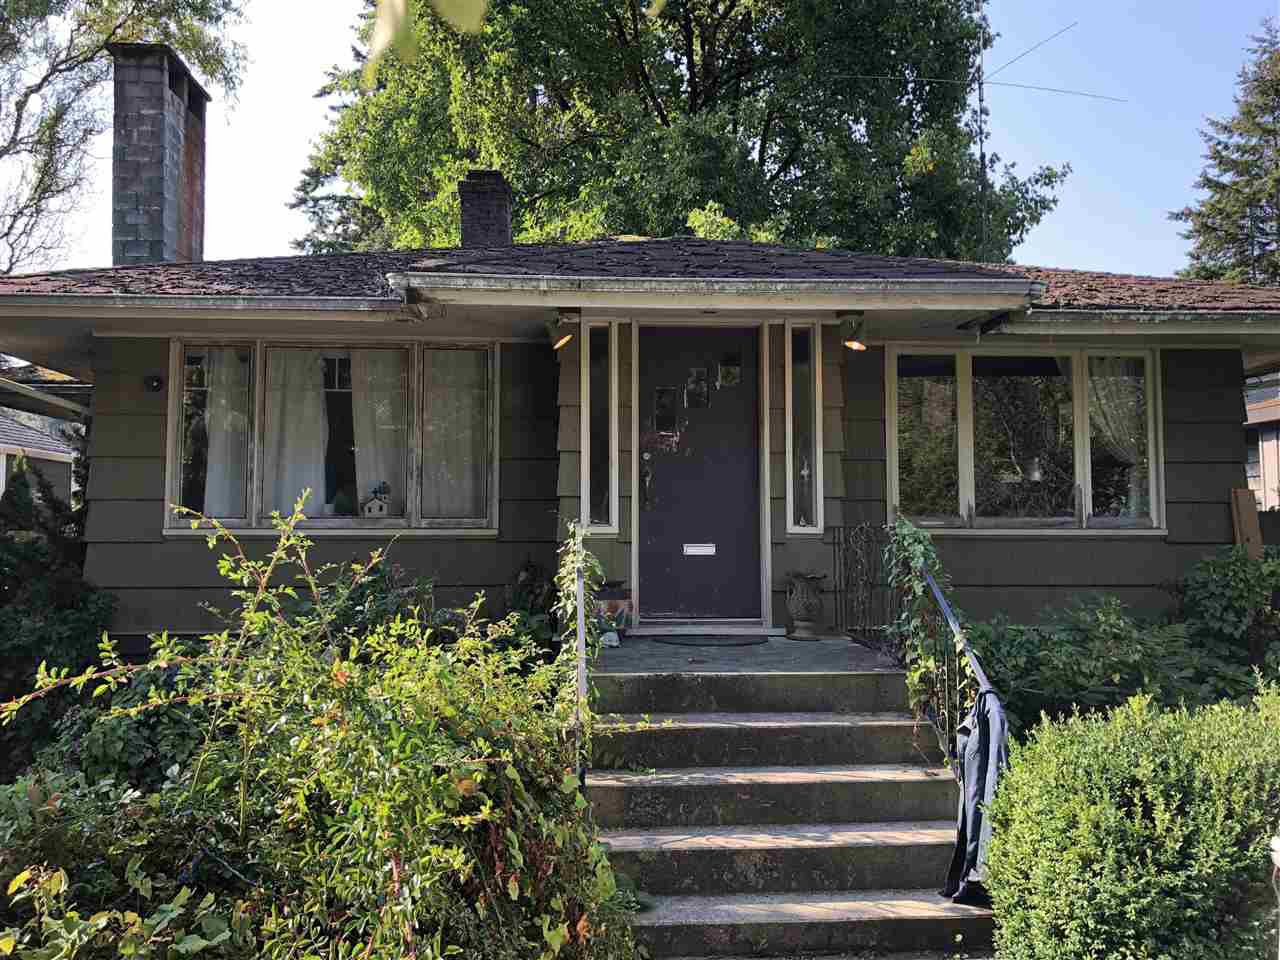 Main Photo: 1069 W 23RD Street in North Vancouver: Pemberton Heights House for sale : MLS®# R2300509